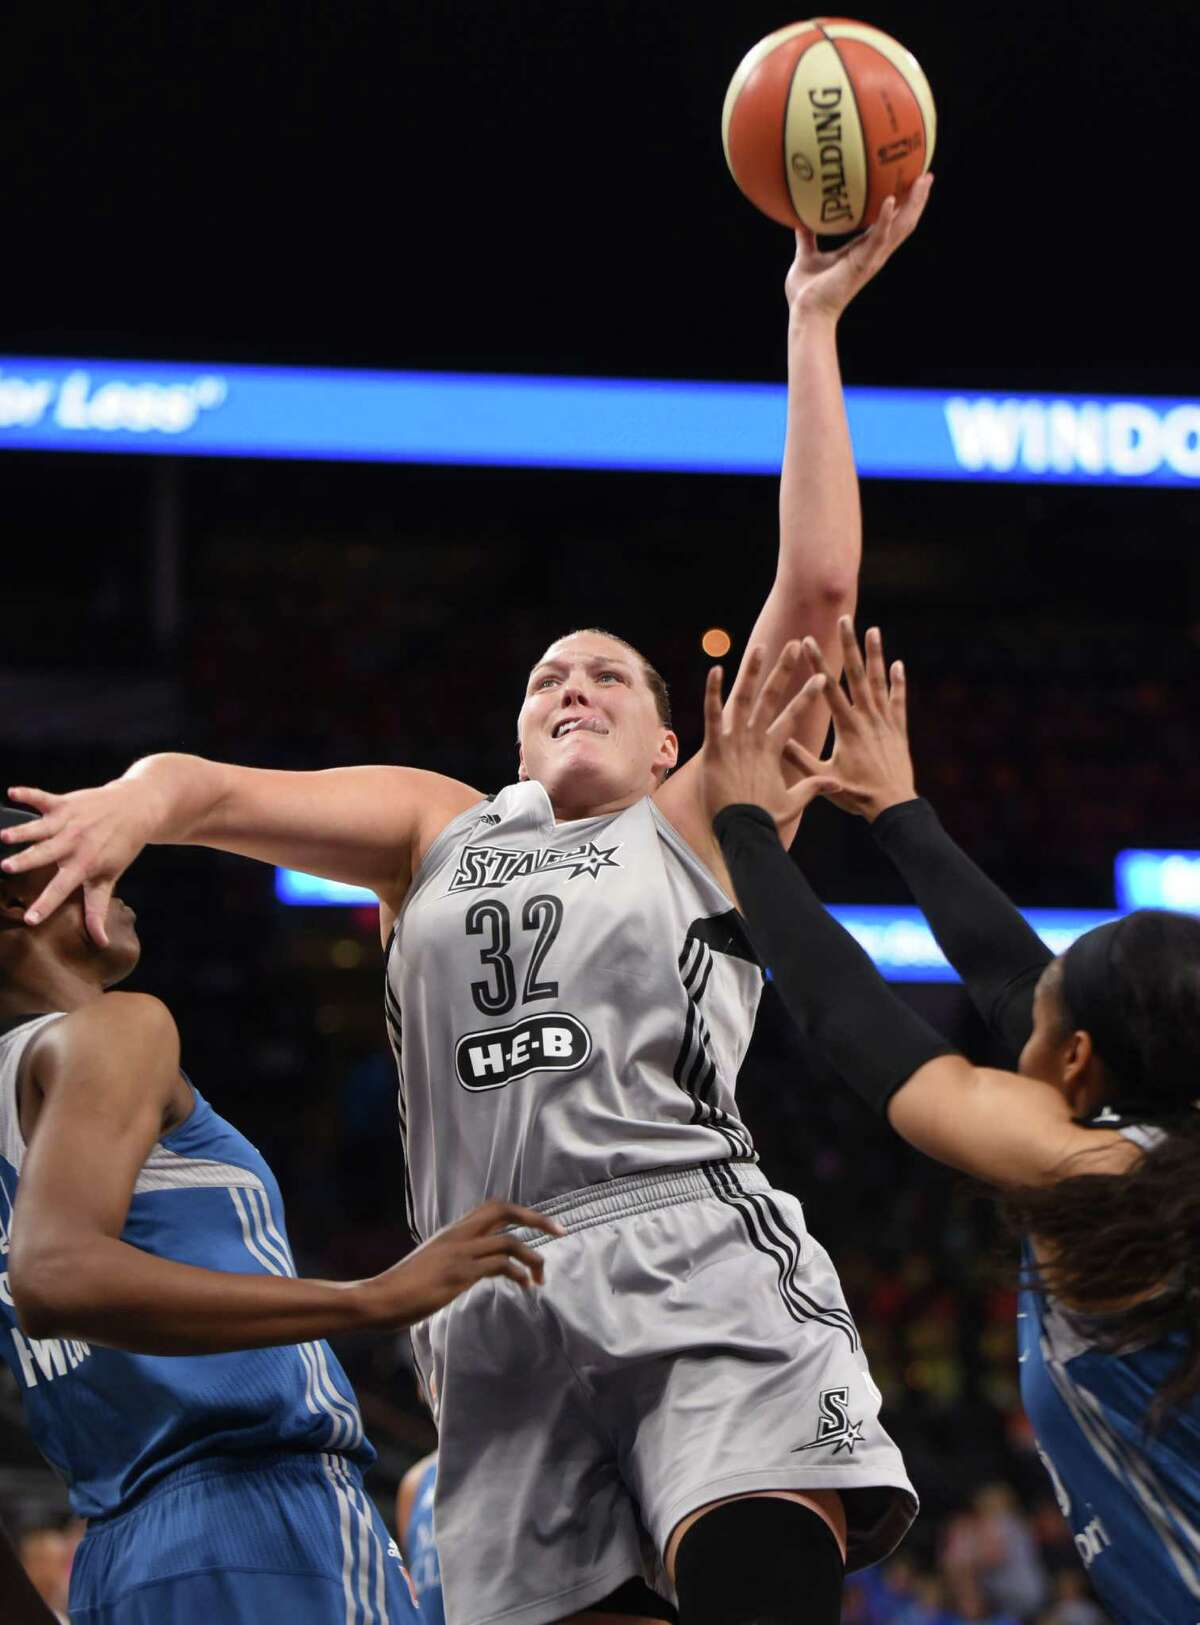 Stars' Jayne Appel-Marinelli (32) pushes aside the Minnesota Lynx's Sylvia Fowles (left) as she shoots at the AT&T Center on July 12, 2016, in San Antonio.